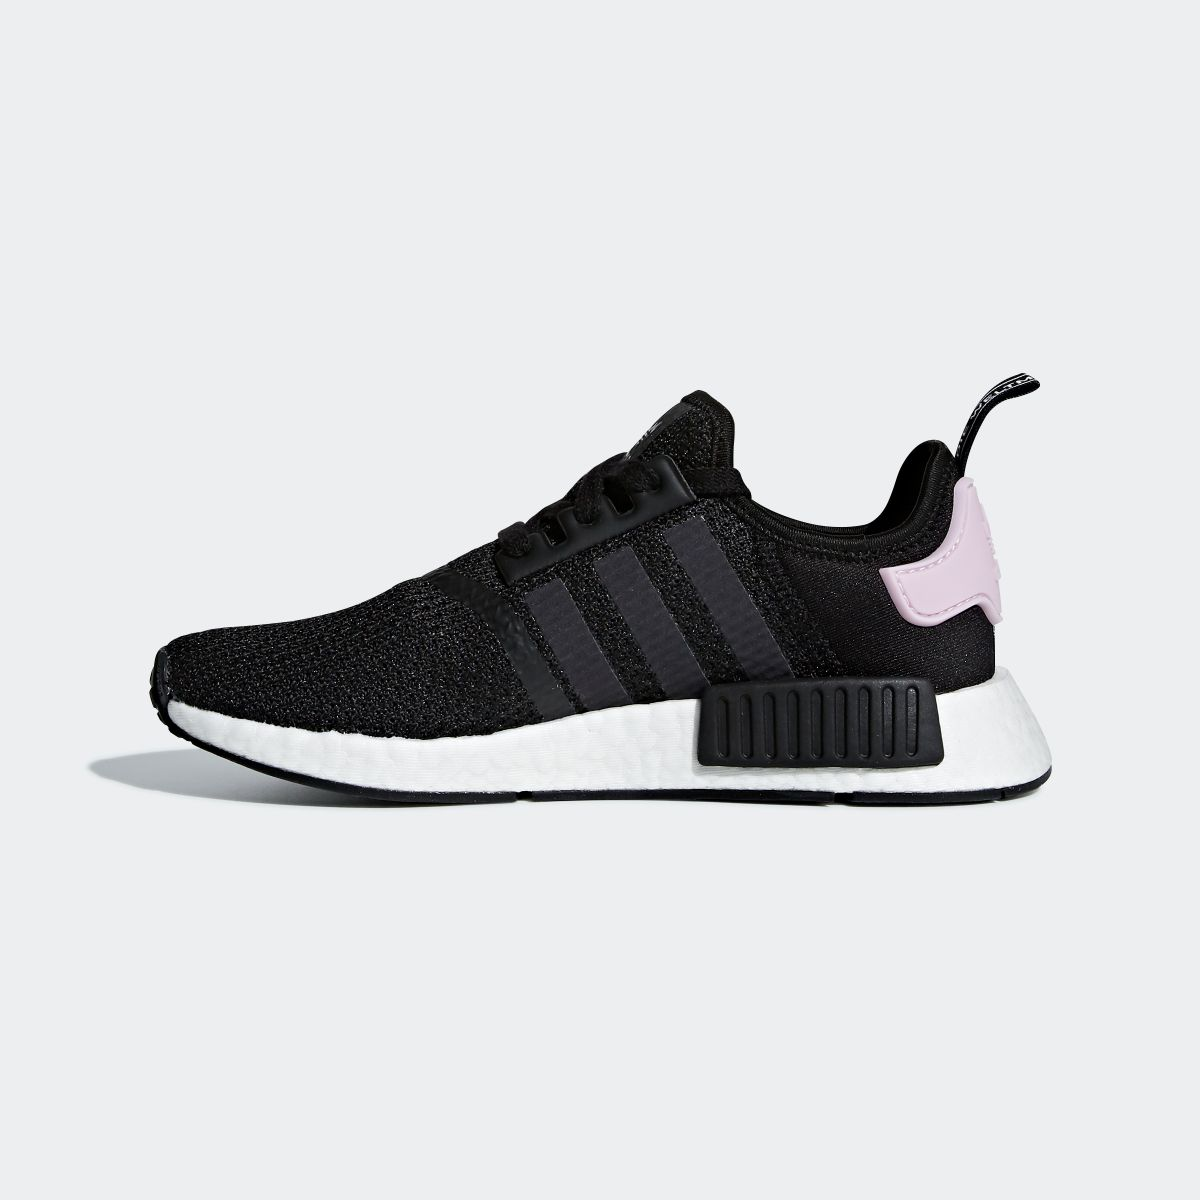 5911c2c4cbe It is Adidas adidas NMD R1 W Lady s B37649 shoes synthetic fiber synthetic  leather rubber bottom in an entry at - 9 21 9 59 at all articles point 10  times ...